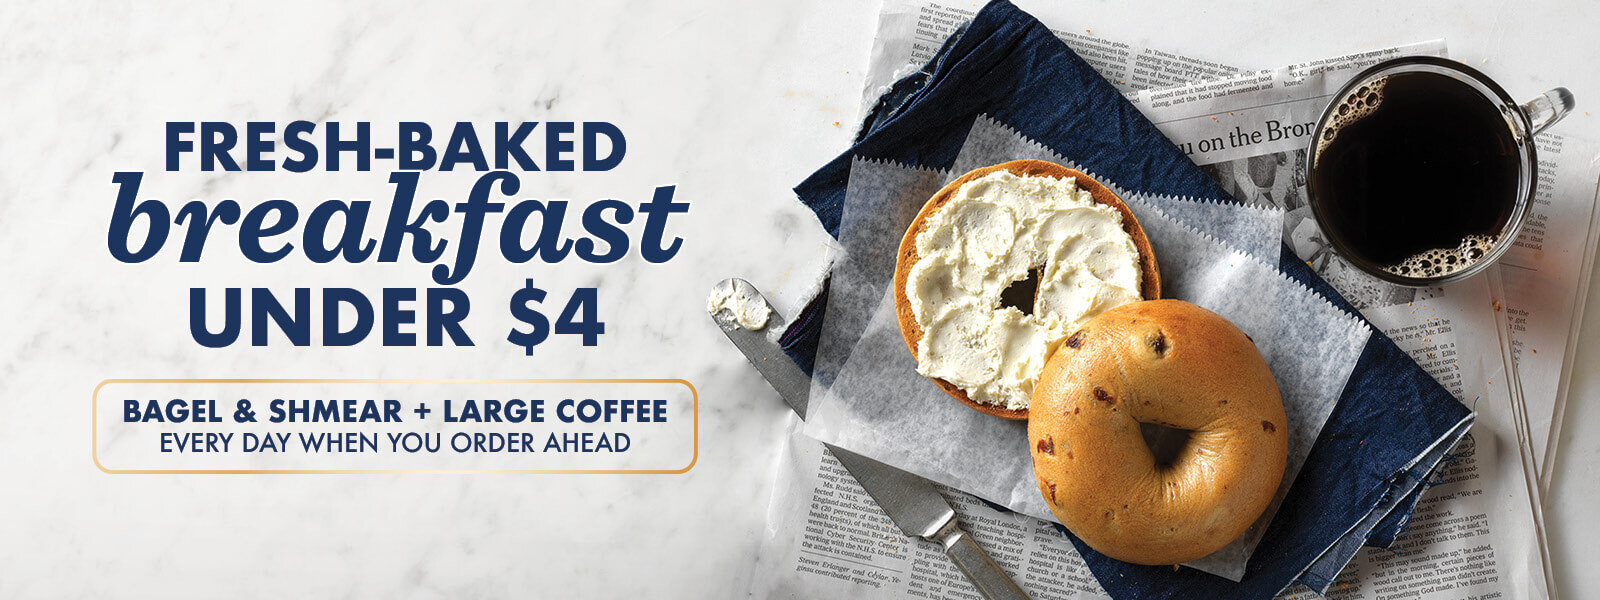 Fresh-Baked Breakfast Under $4 – Bagel & Shmear with Large Iced Coffee Every Day when you Order Ahead in the App at Noah's NY Bagels